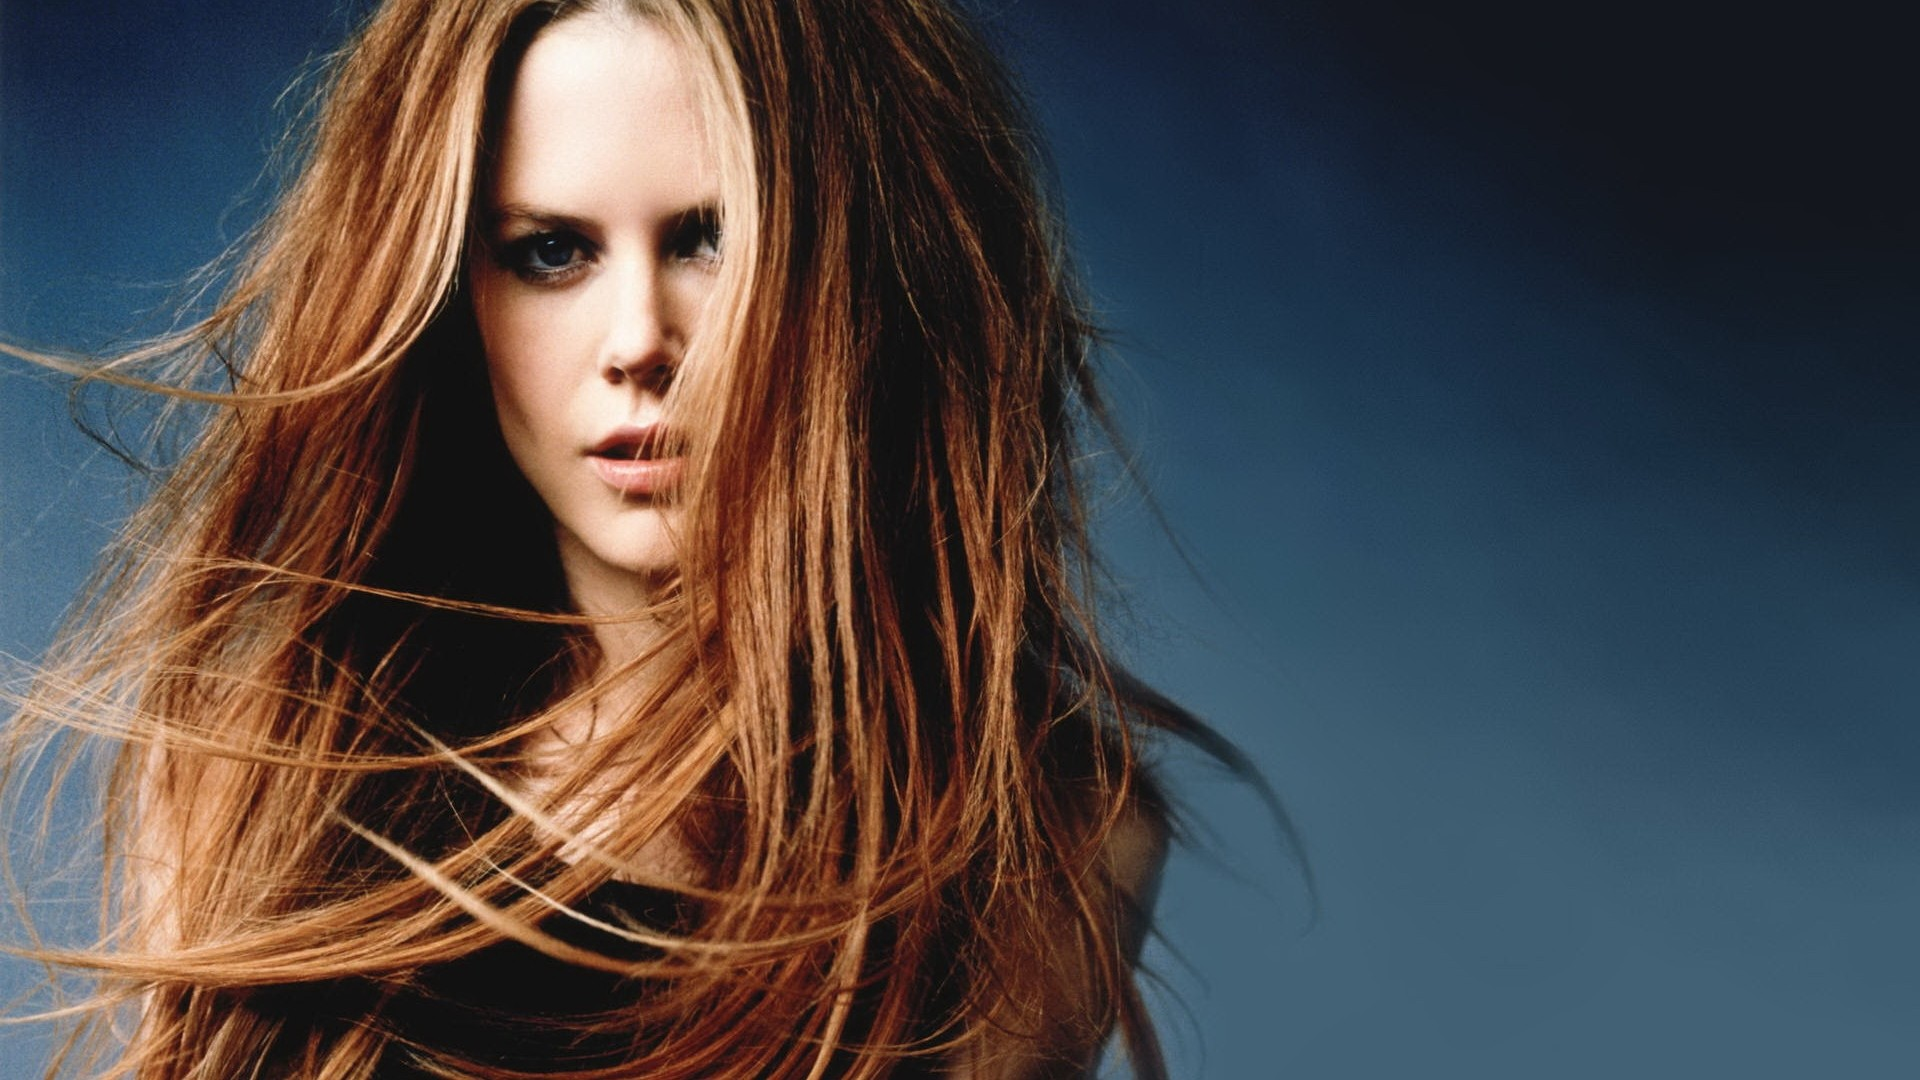 Cool Lion Wallpapers Hd Nicole Kidman Full Hd Wallpaper And Background Image